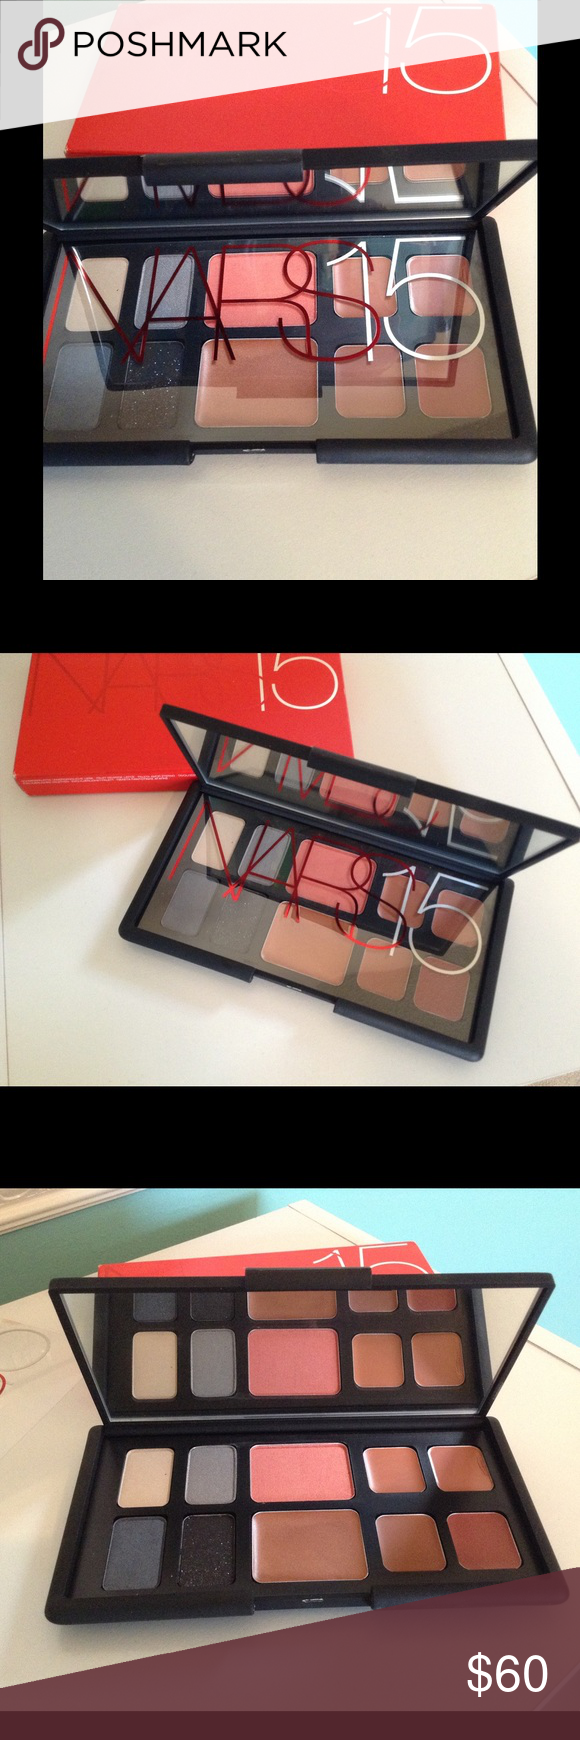 Limited Edition Nars Anniversary Palette Nars limited edition anniversary palette, this palette has ALL of Nars Best Sellers from eyeshadow shades, to blush, bronzer and lipstick shades. You can create so many looks using this face palette NARS Makeup Eyeshadow